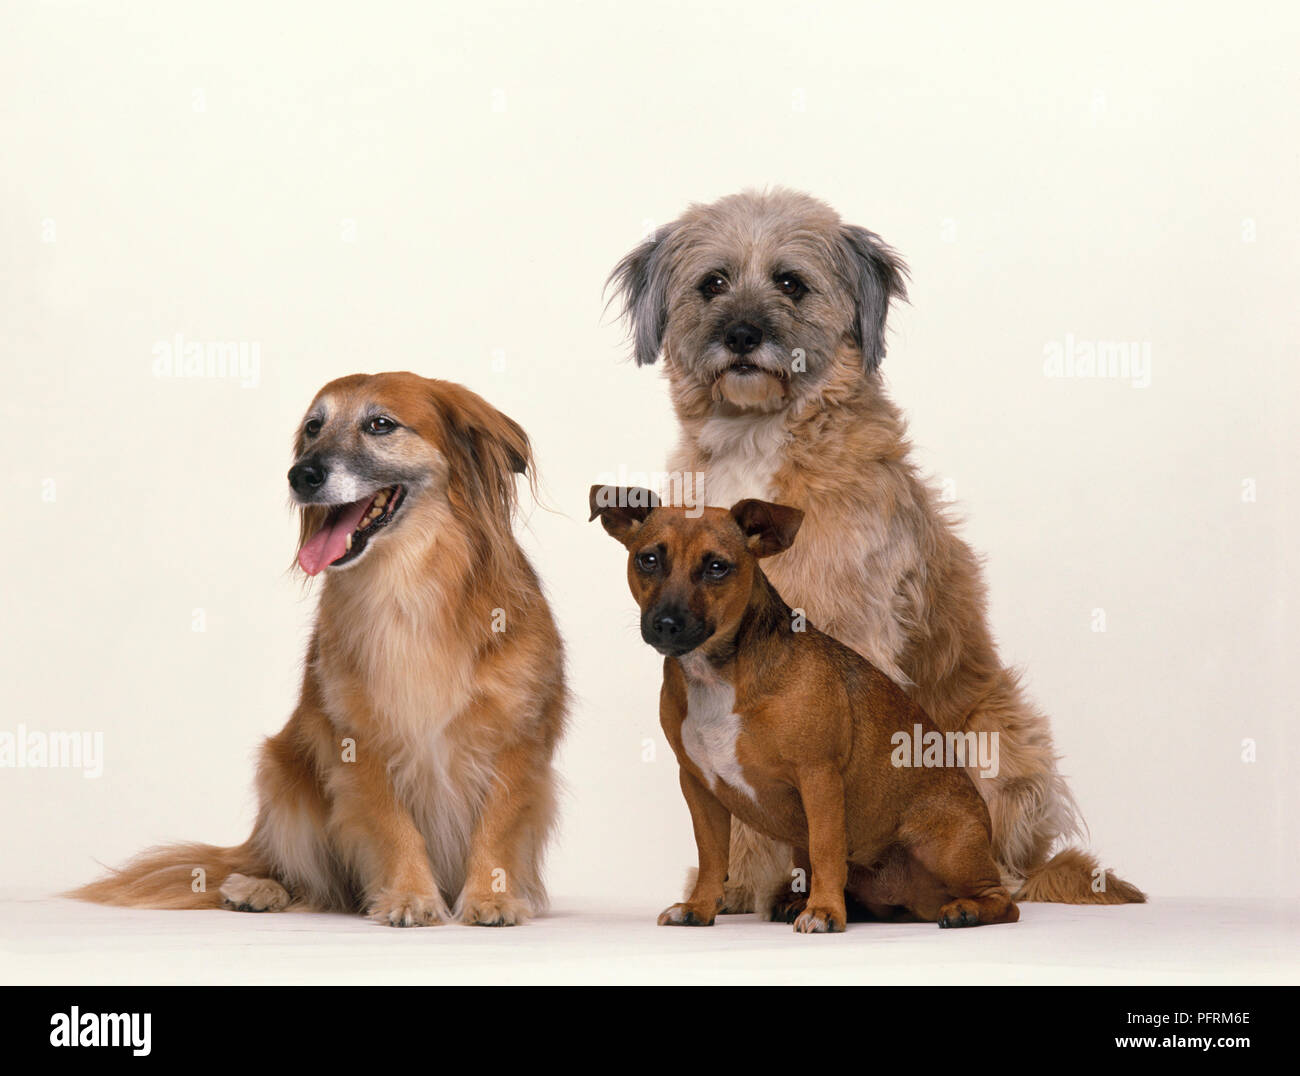 Three Large Small And Medium Mongrel Semi Longhair Longhaired And Short Hair Dogs Sitting Together Stock Photo Alamy